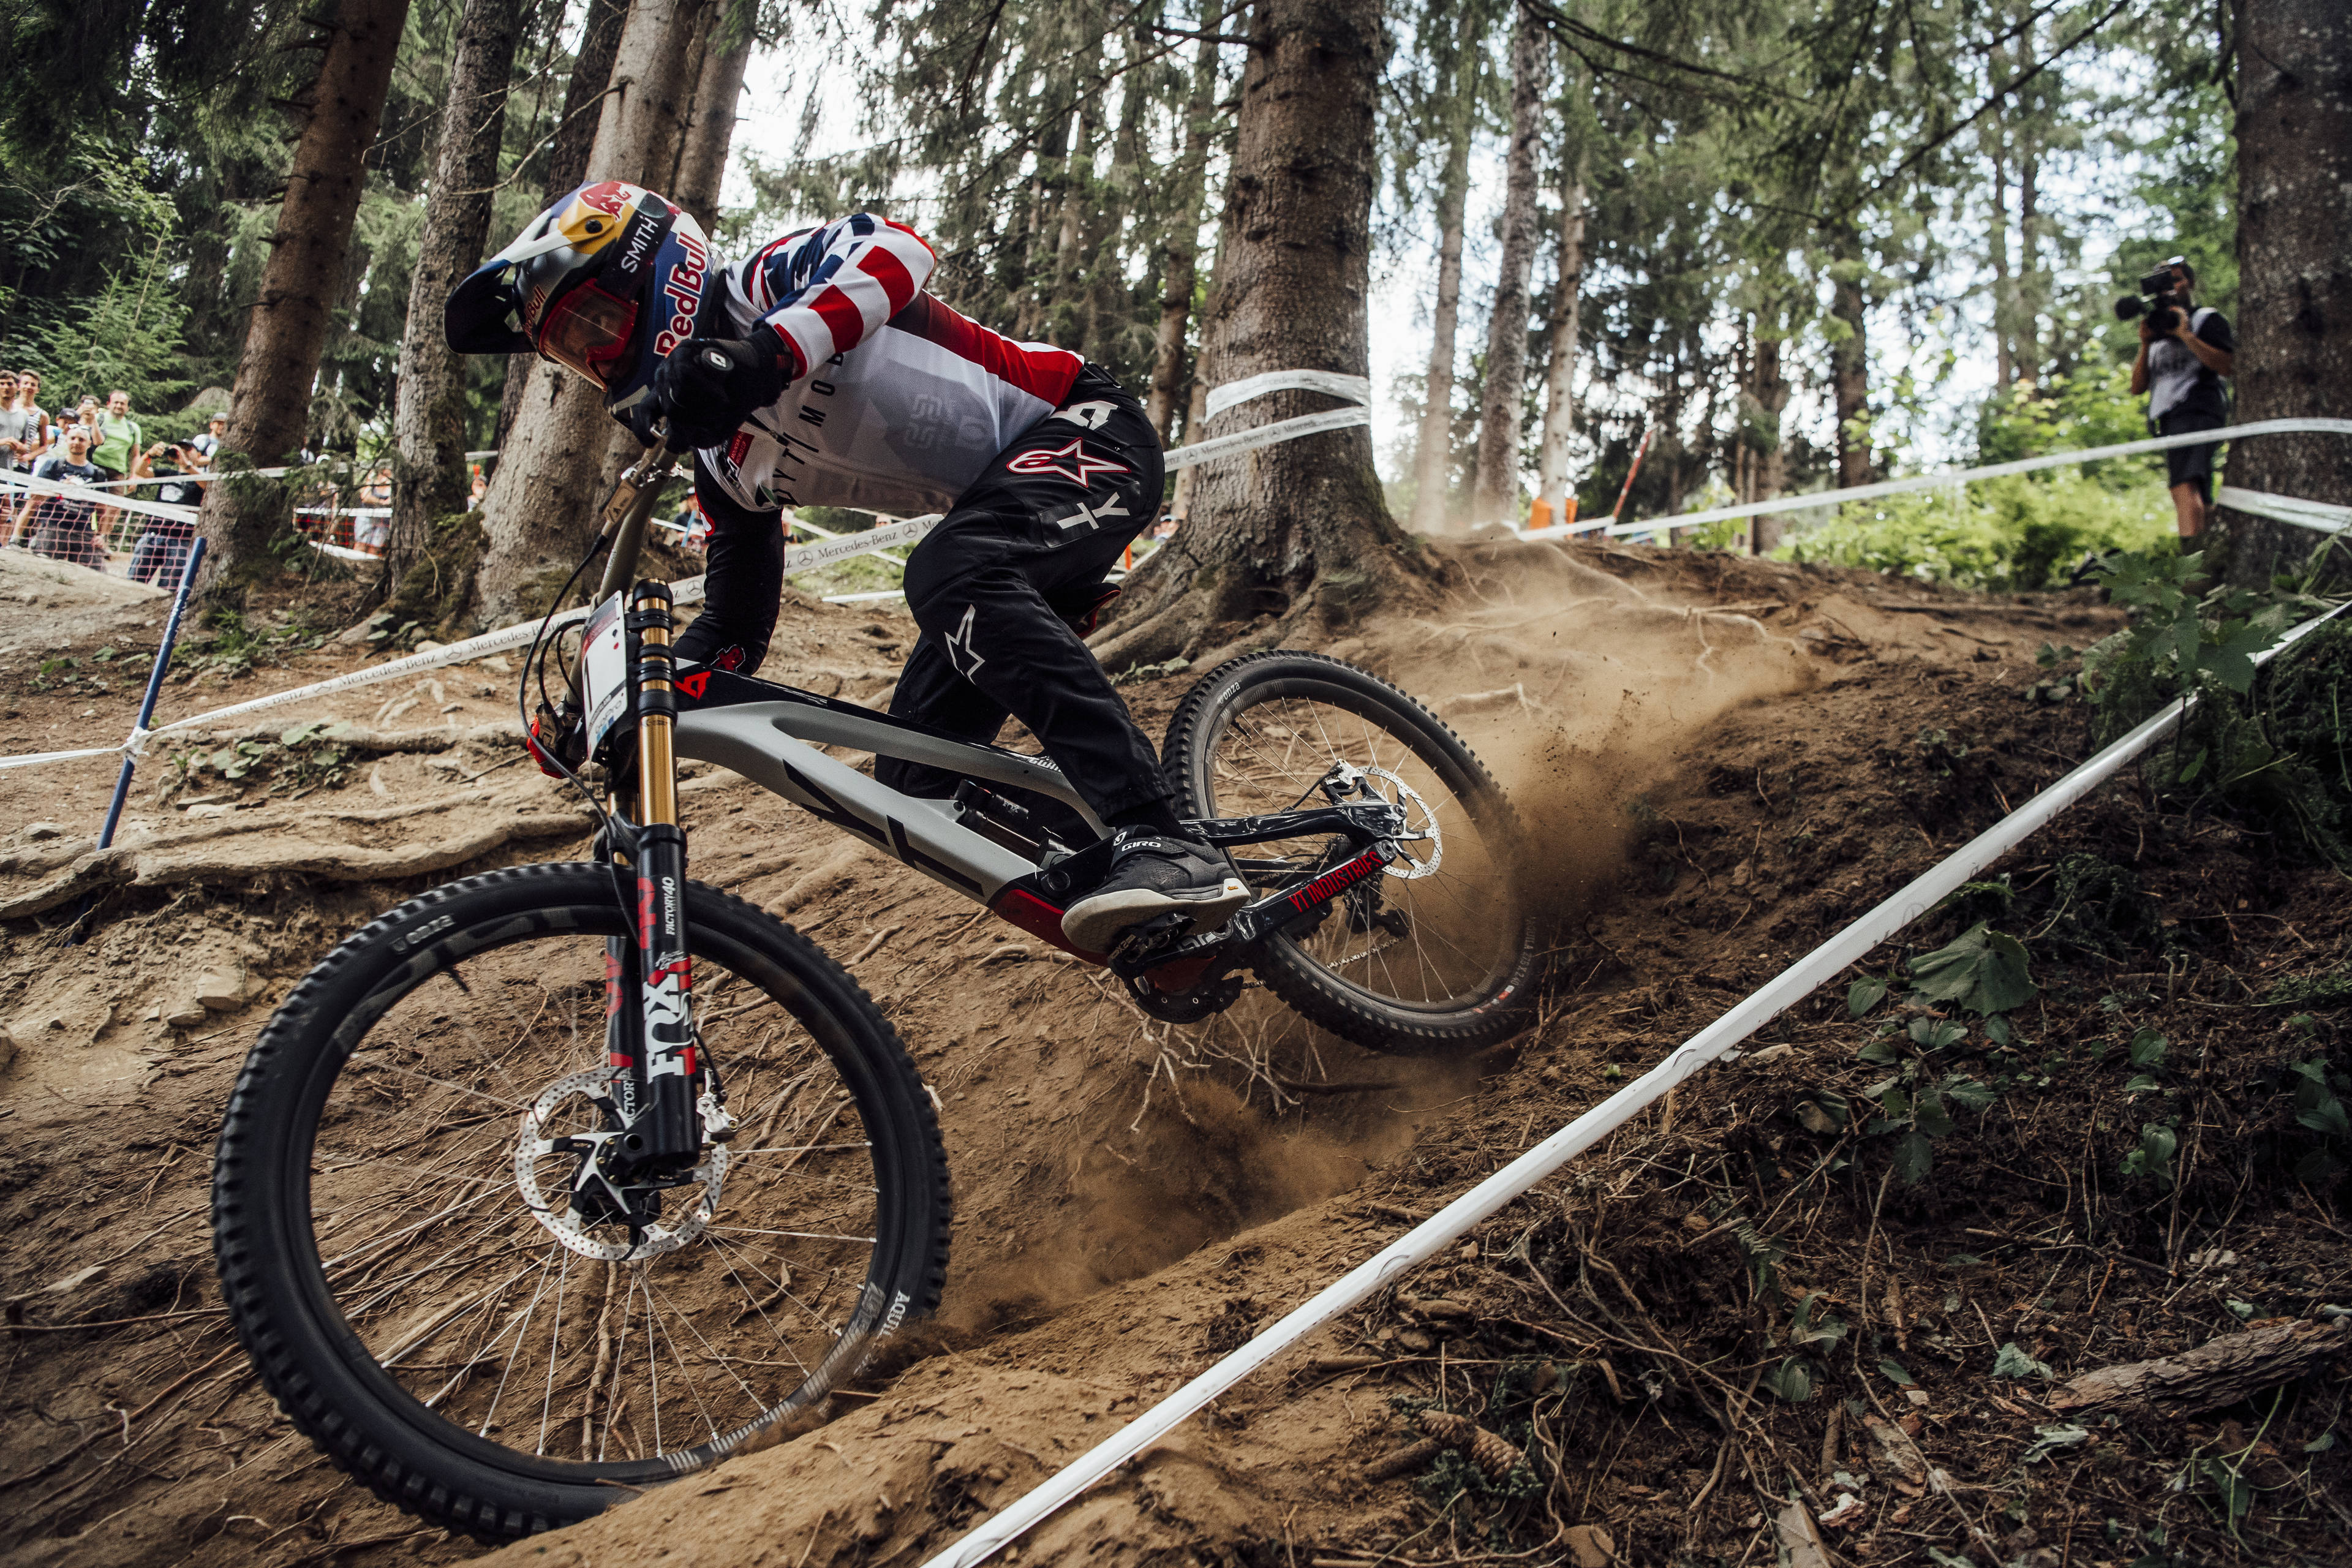 29ff819fbf3 Aaron Gwin performs at UCI DH World Cup in Leogang, Austria on June 10th,  2018 – Photographer Credit: Bartek Wolinski/Red Bull Content Pool